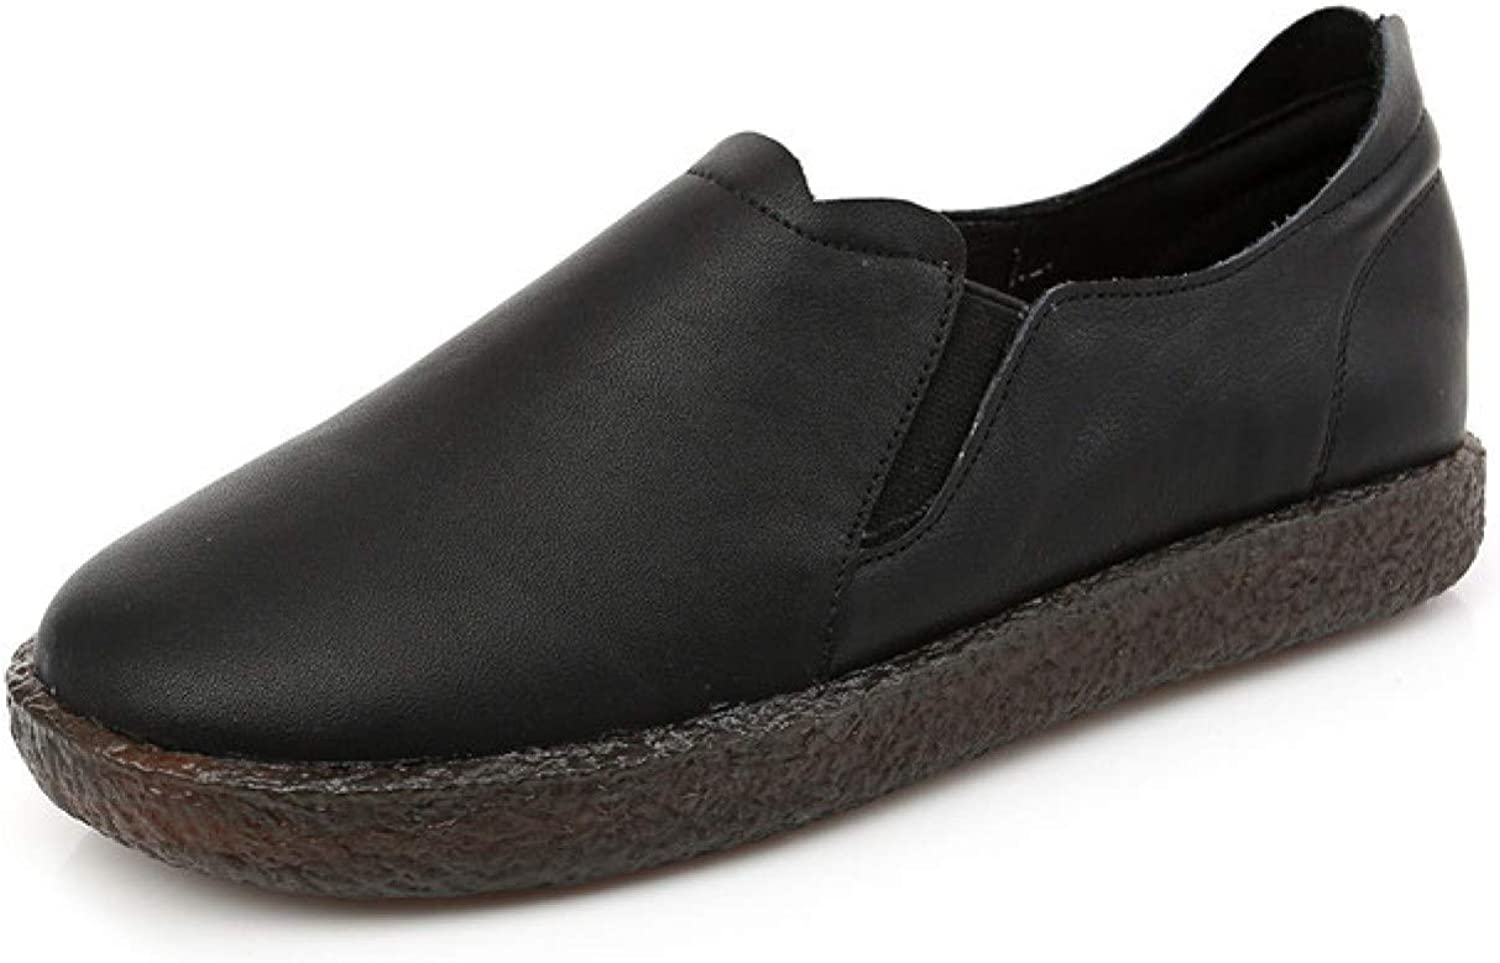 Women's Loafer Shoes Slip-On Shoes for Ladies Driving Walking Shopping Breathable Flat